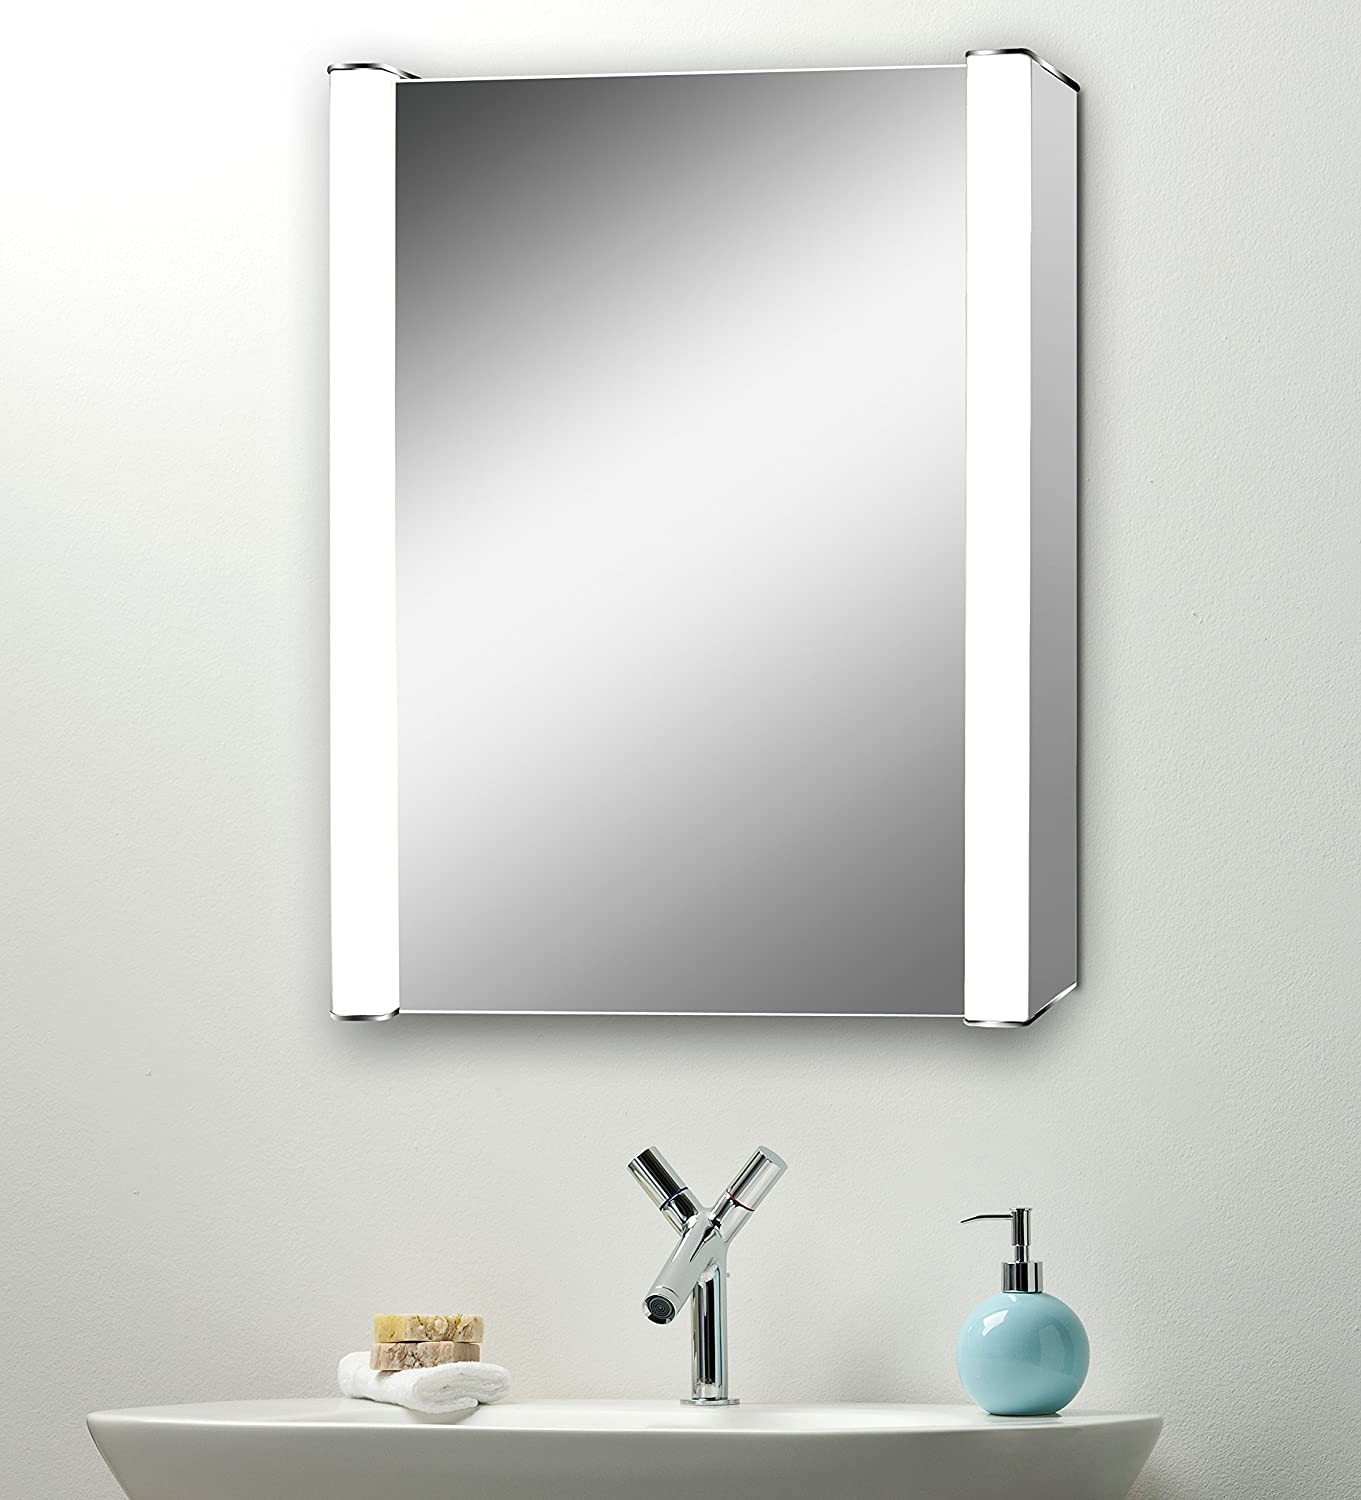 Bathroom Cabinet With Shaver Point Led Illuminated Bathroom Mirror Cabinet With Demister Heat Pad